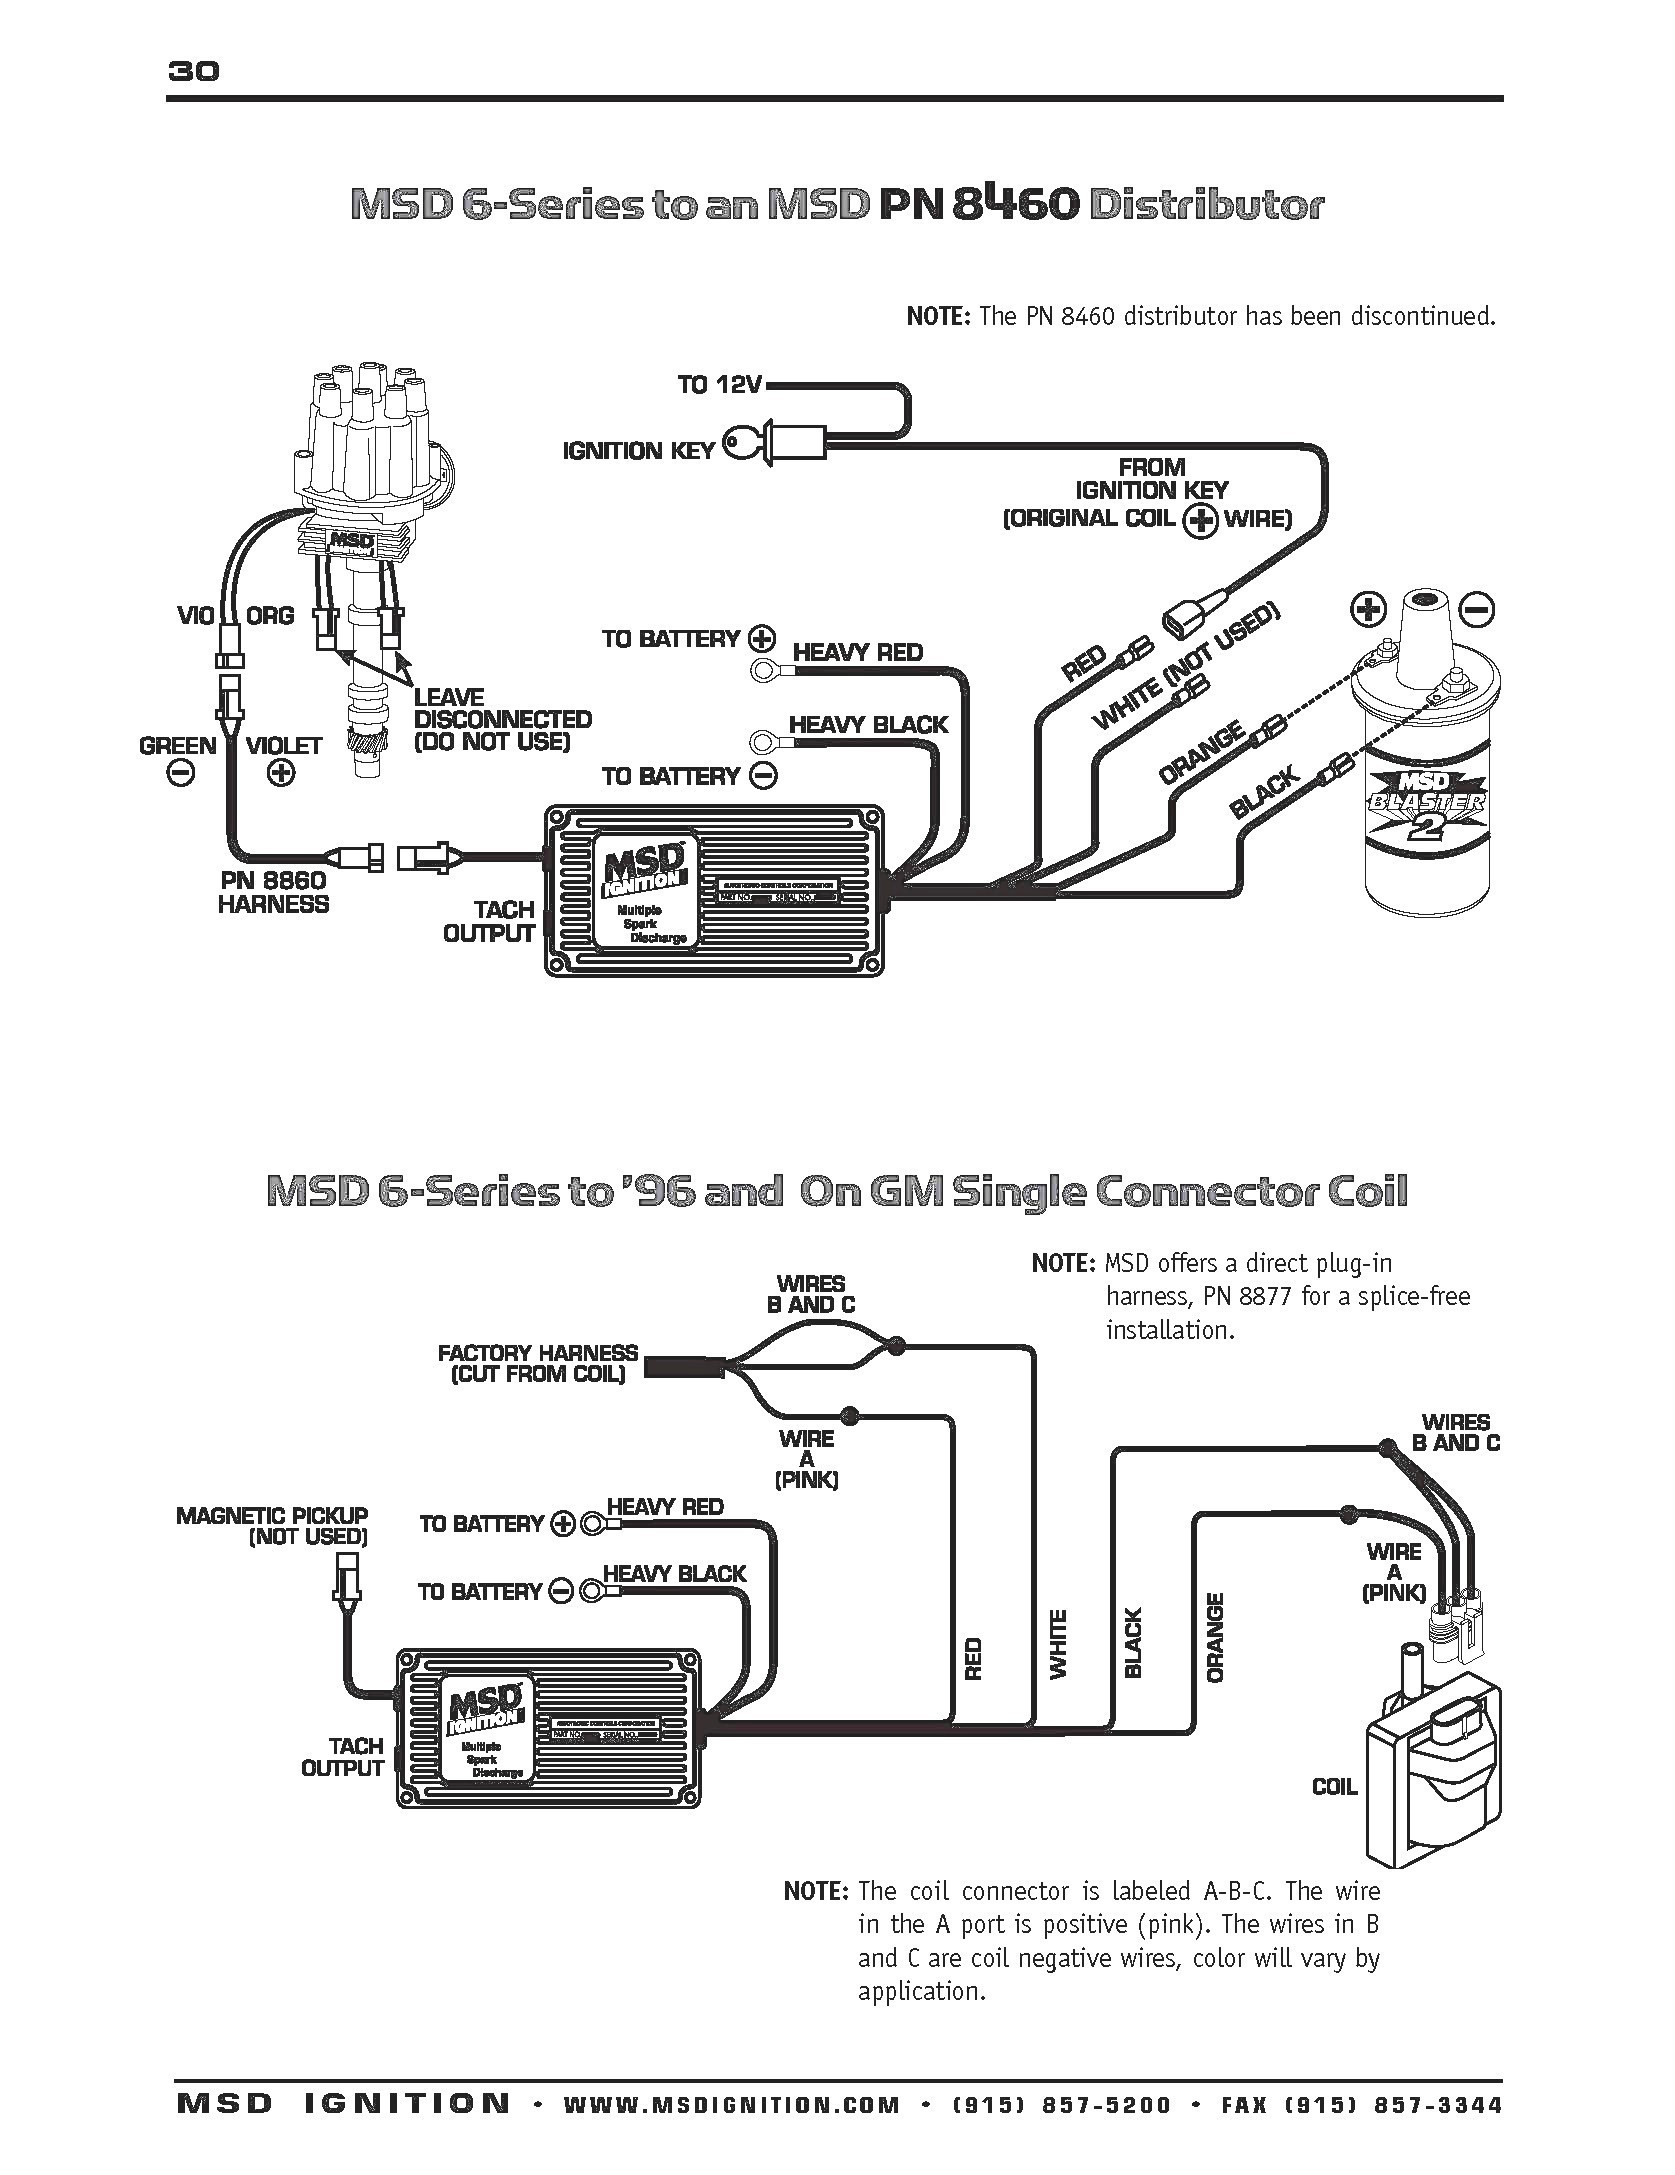 hight resolution of mallory distributor wiring diagram with msd great installation of rh mauriciolemus com mallory unilite distributor wiring